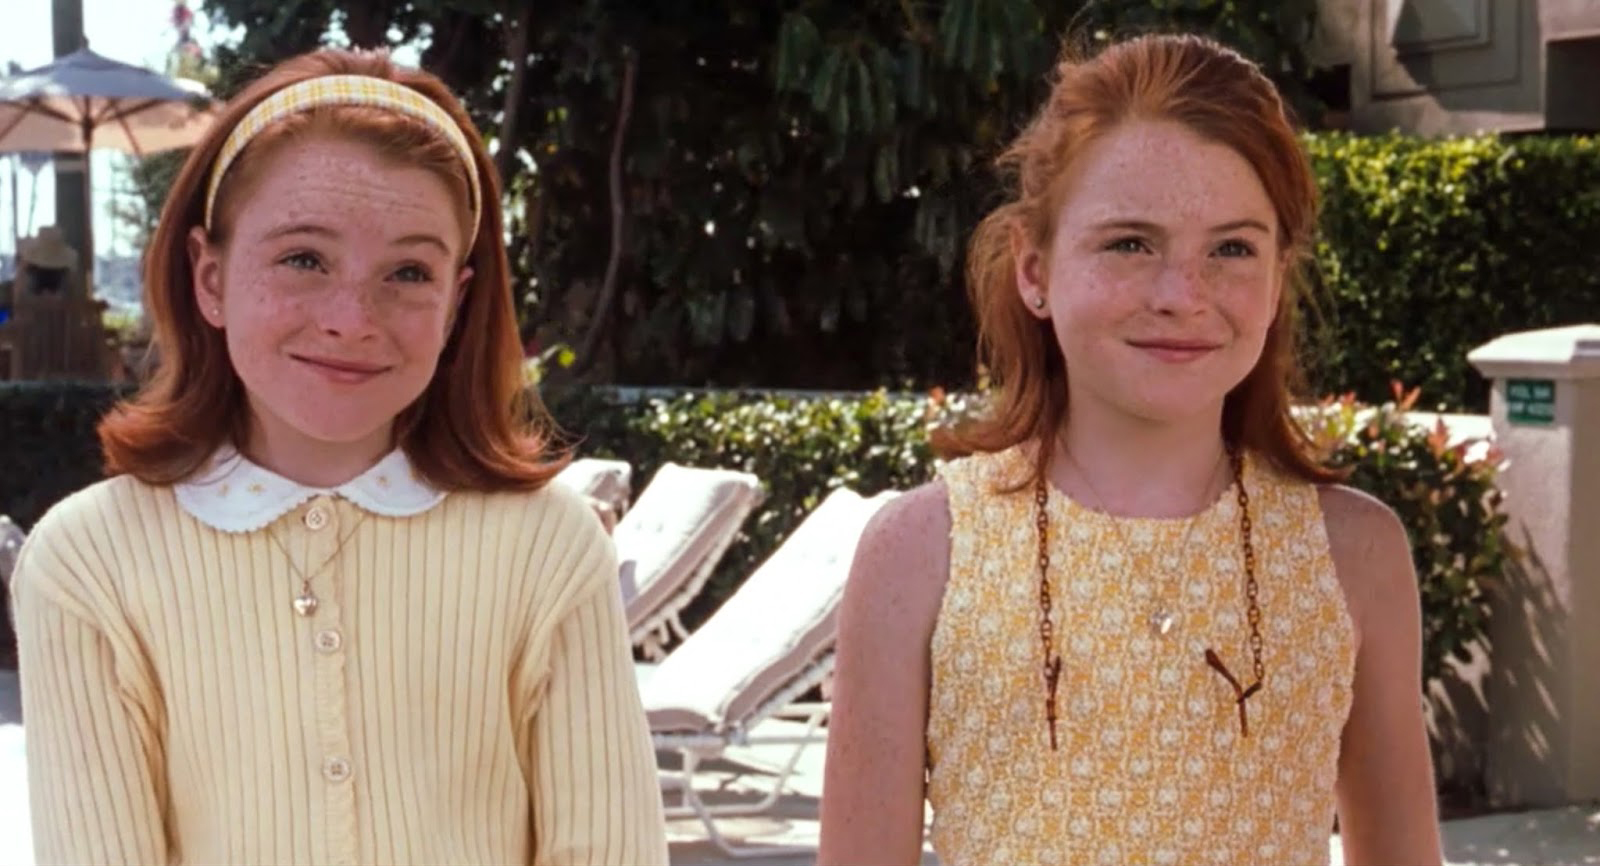 Annie James and Hallie Parker from The Parent Trap